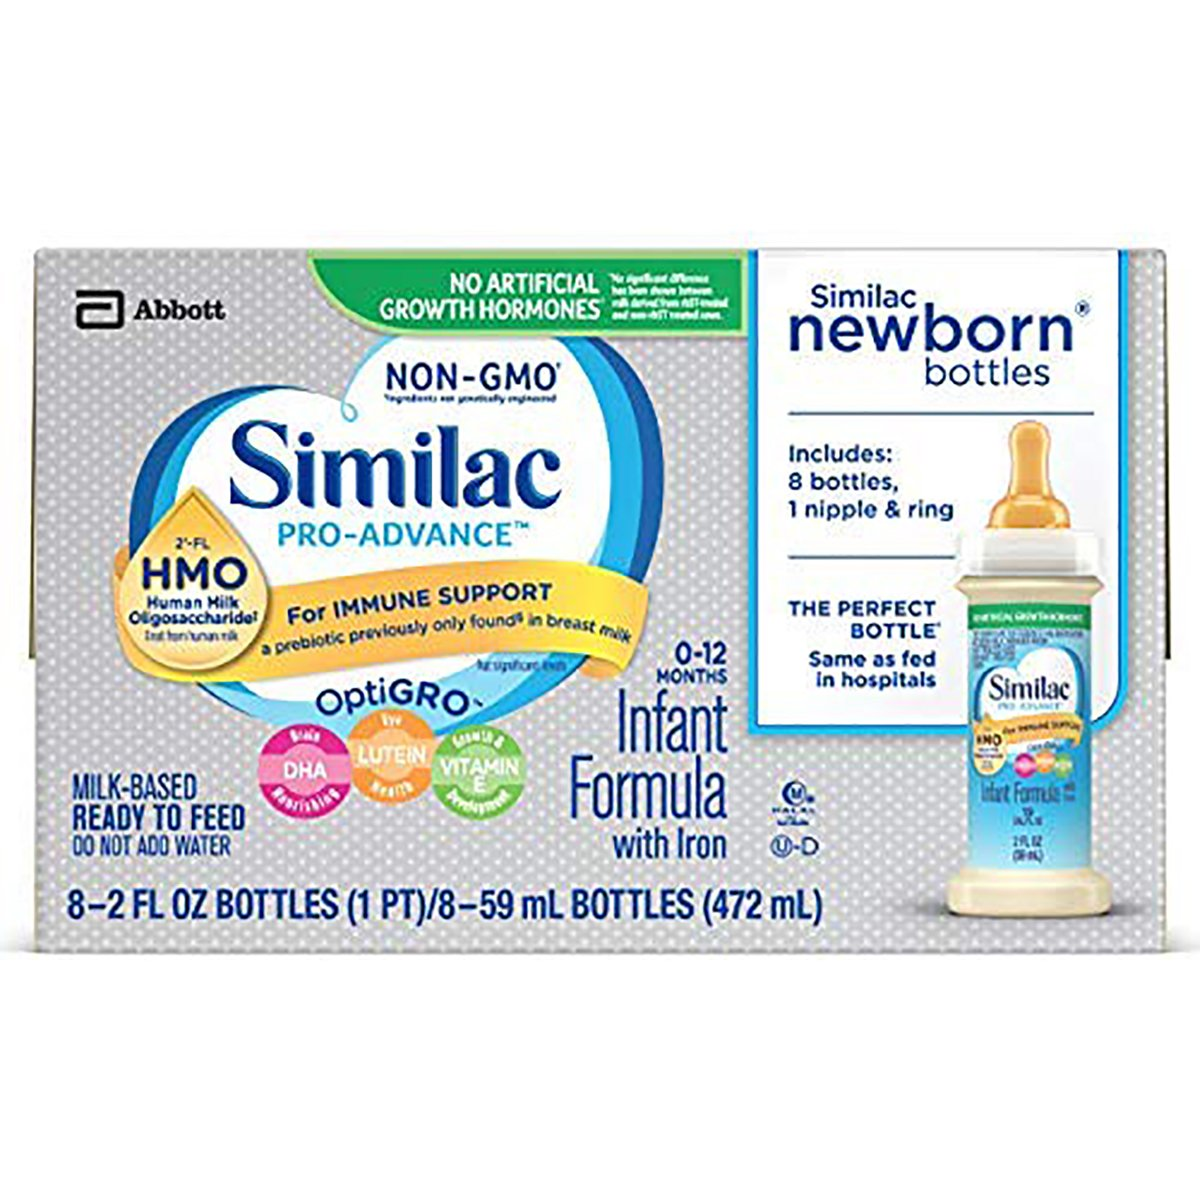 similac 2 oz bottles coupons